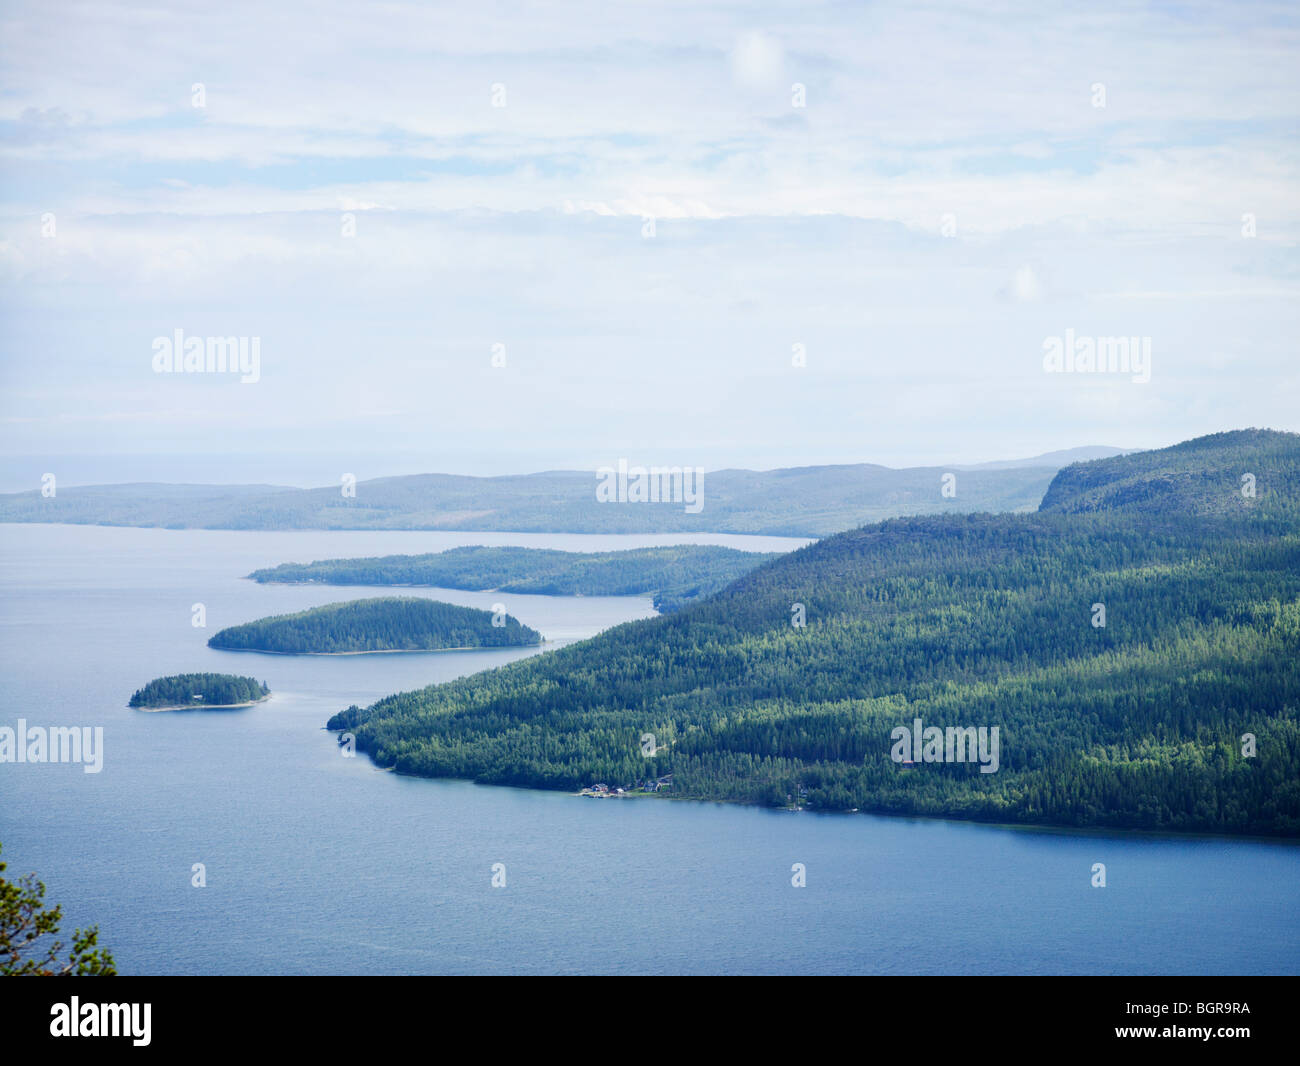 The view from a mountain over the sea, Hoga Kusten, Sweden. - Stock Image